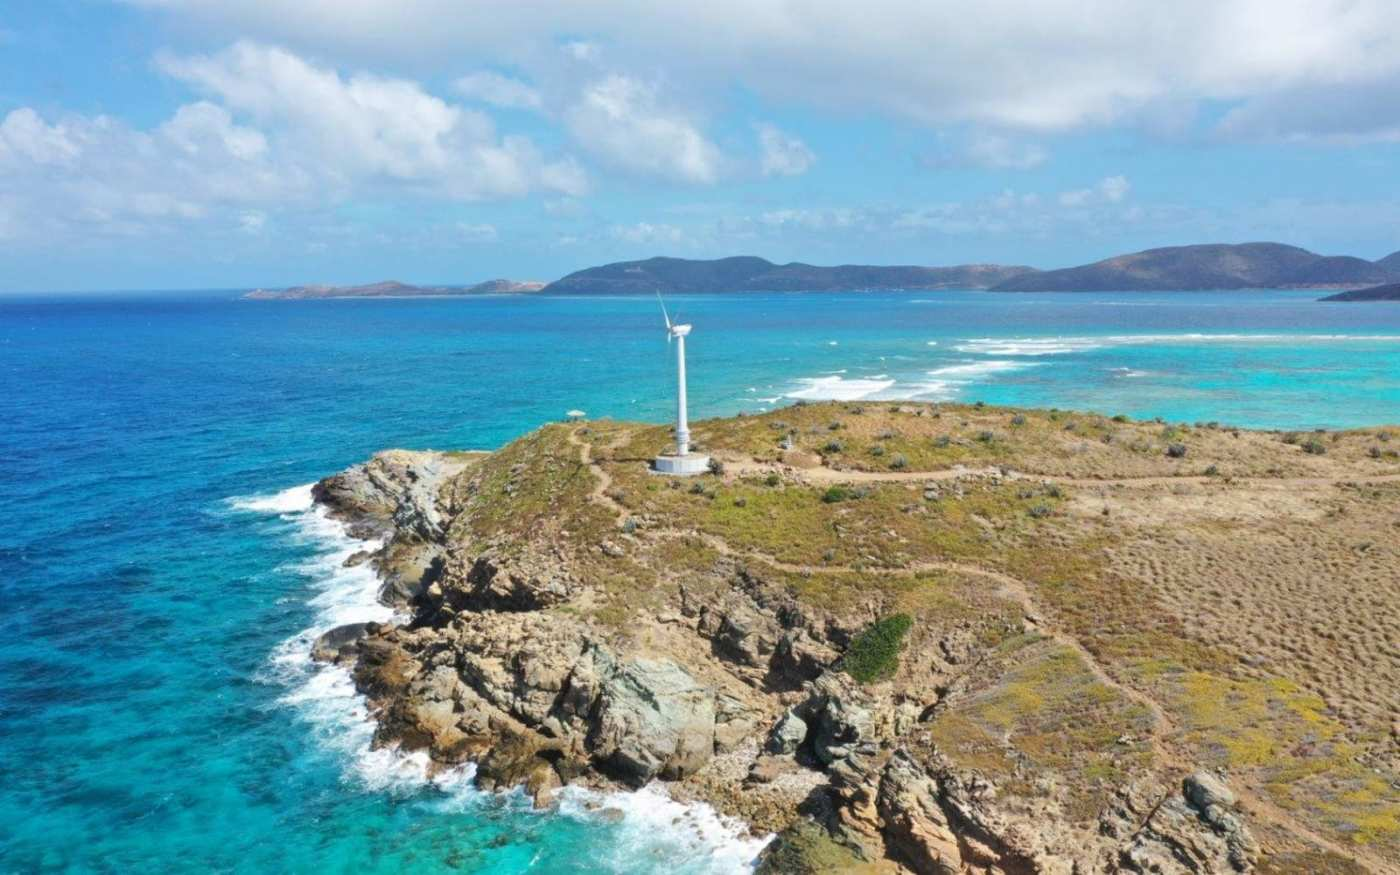 Wind turbine on the tip of an island, surrounded by sea, with other islands in the distance